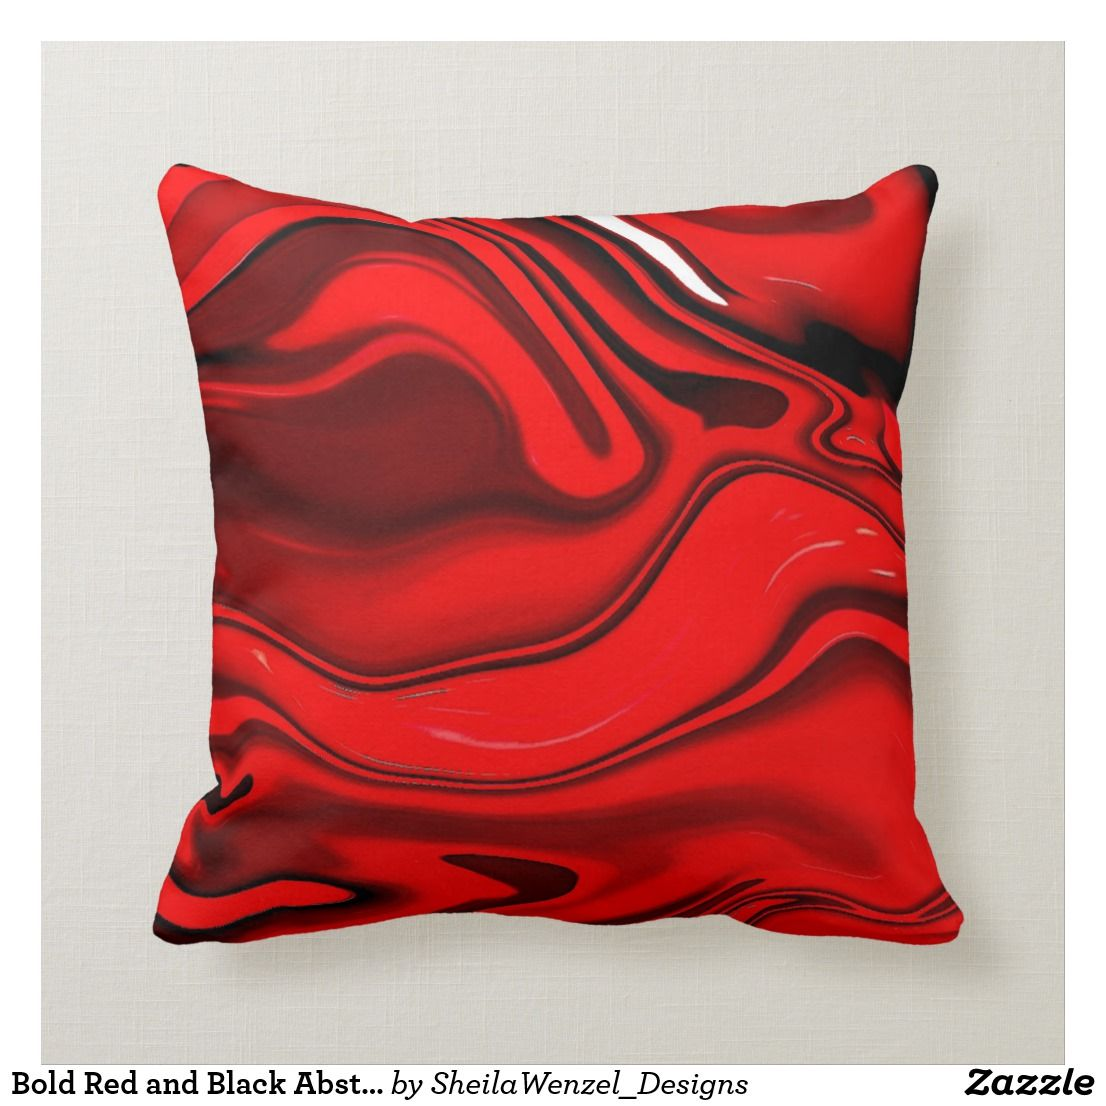 Bold Red And Black Abstract Pillow Zazzle Co Nz Black Abstract Abstract Pillows Pillows